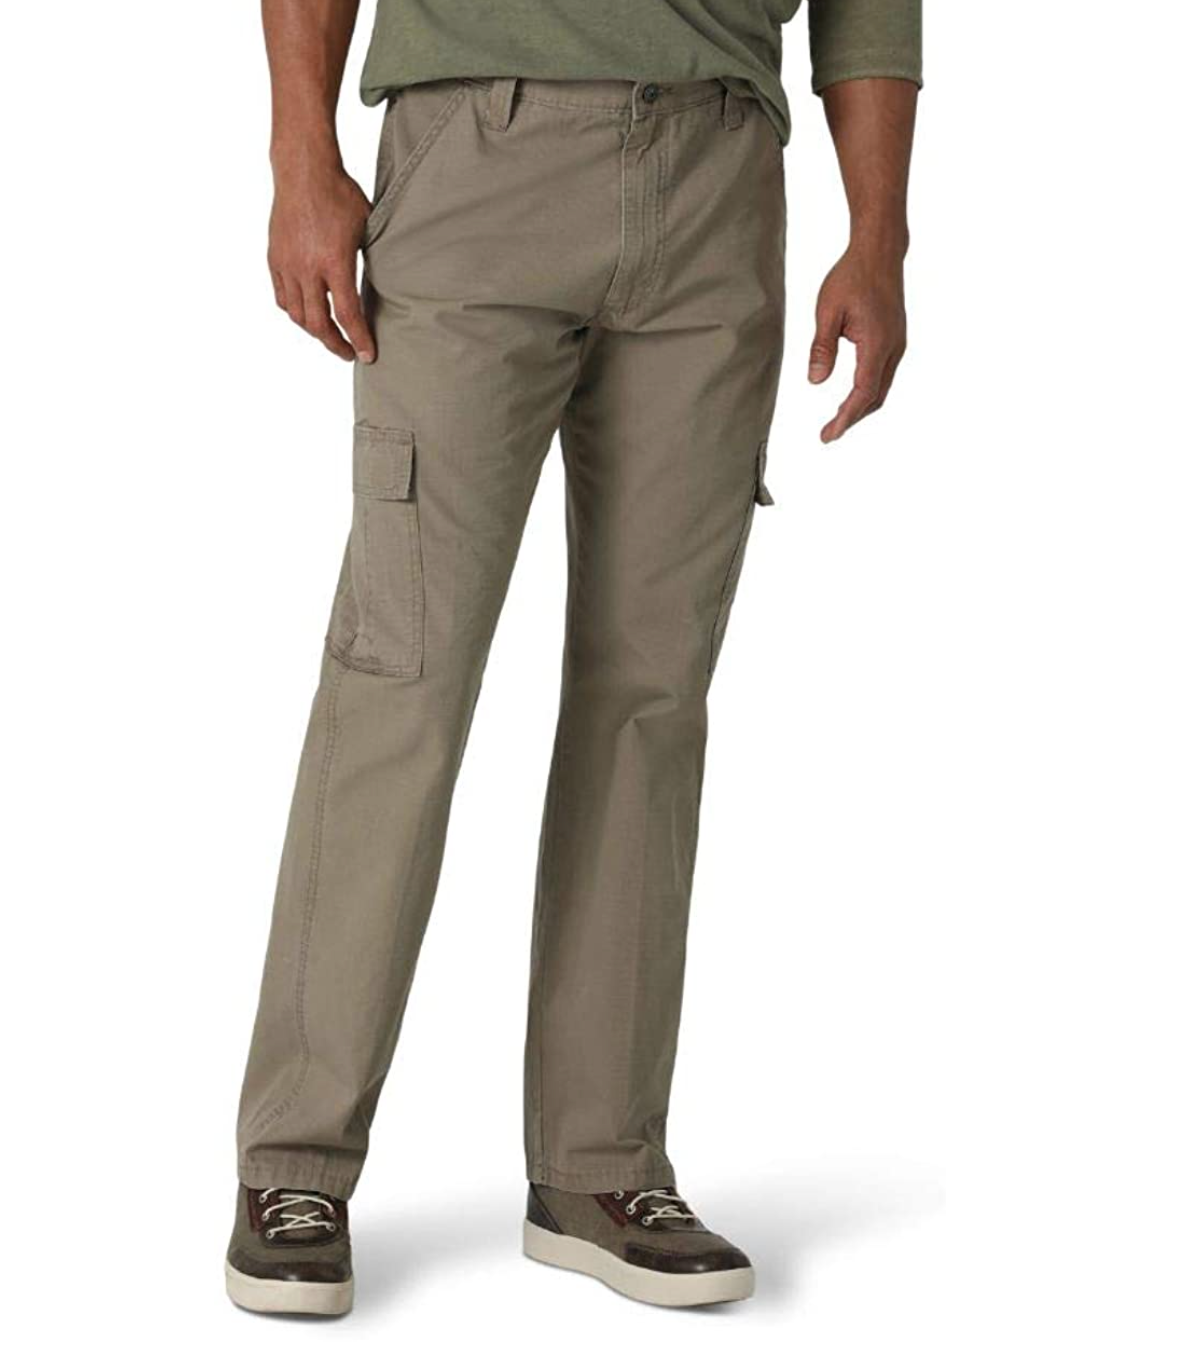 Wrangler Relaxed Fit Hiking Pants